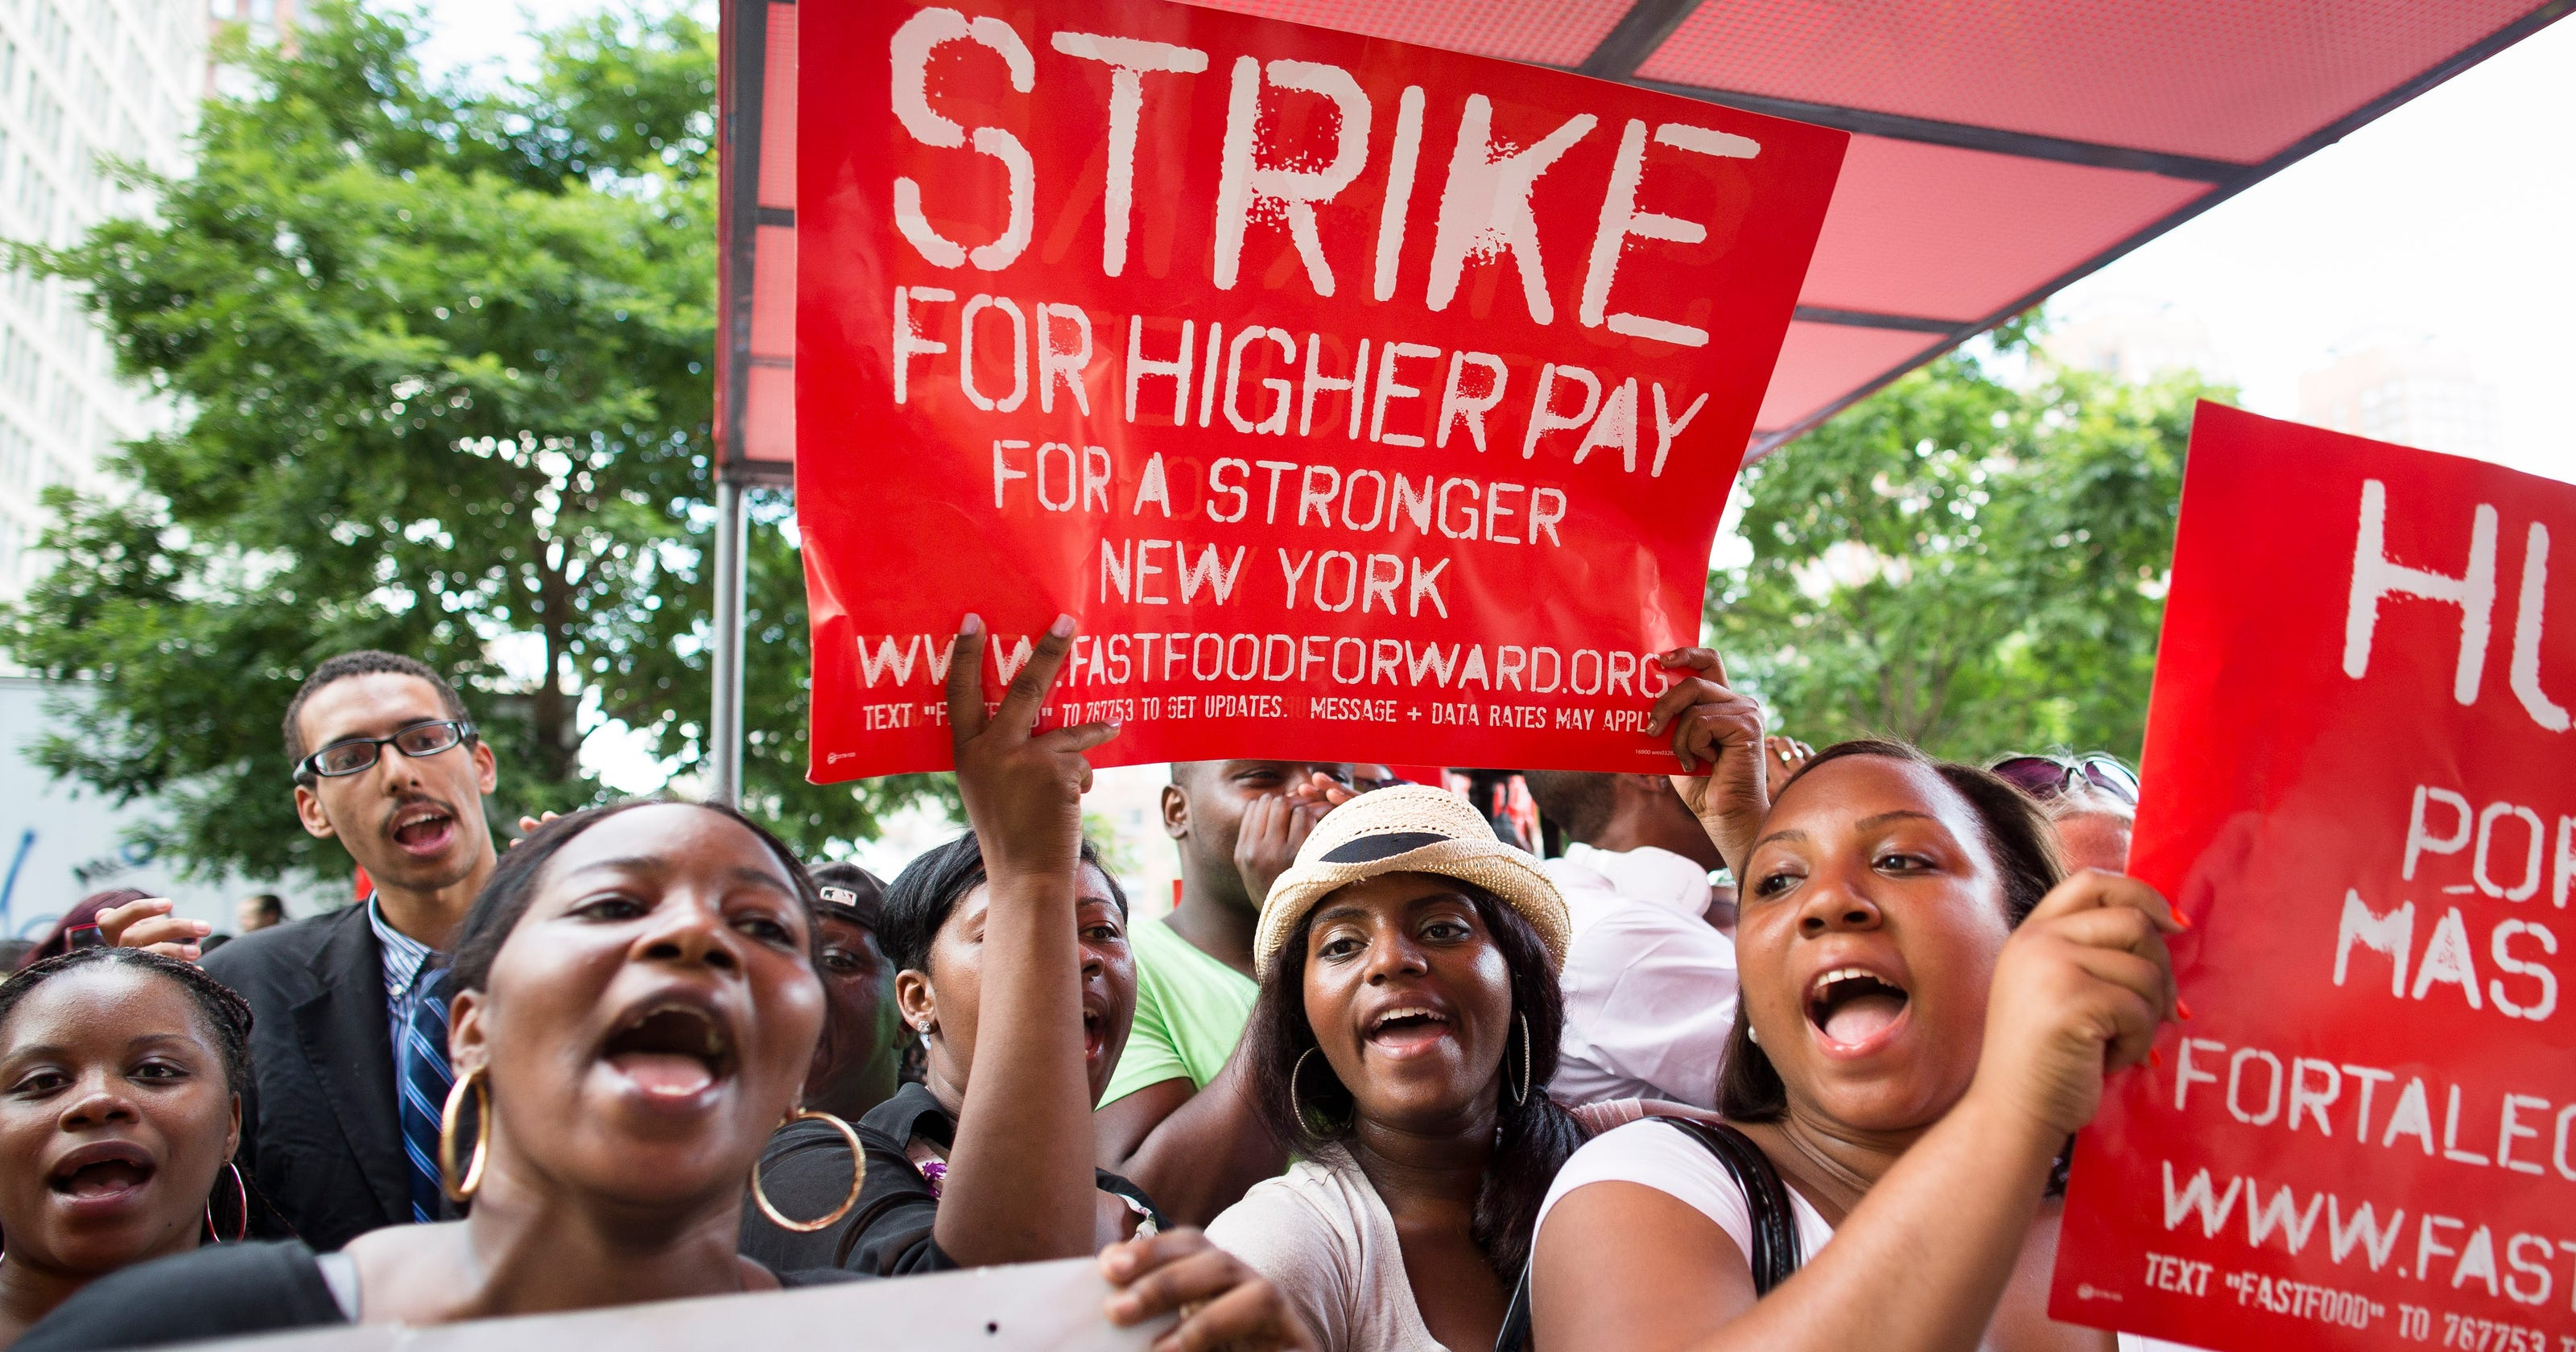 Fast-food workers strike for higher pay